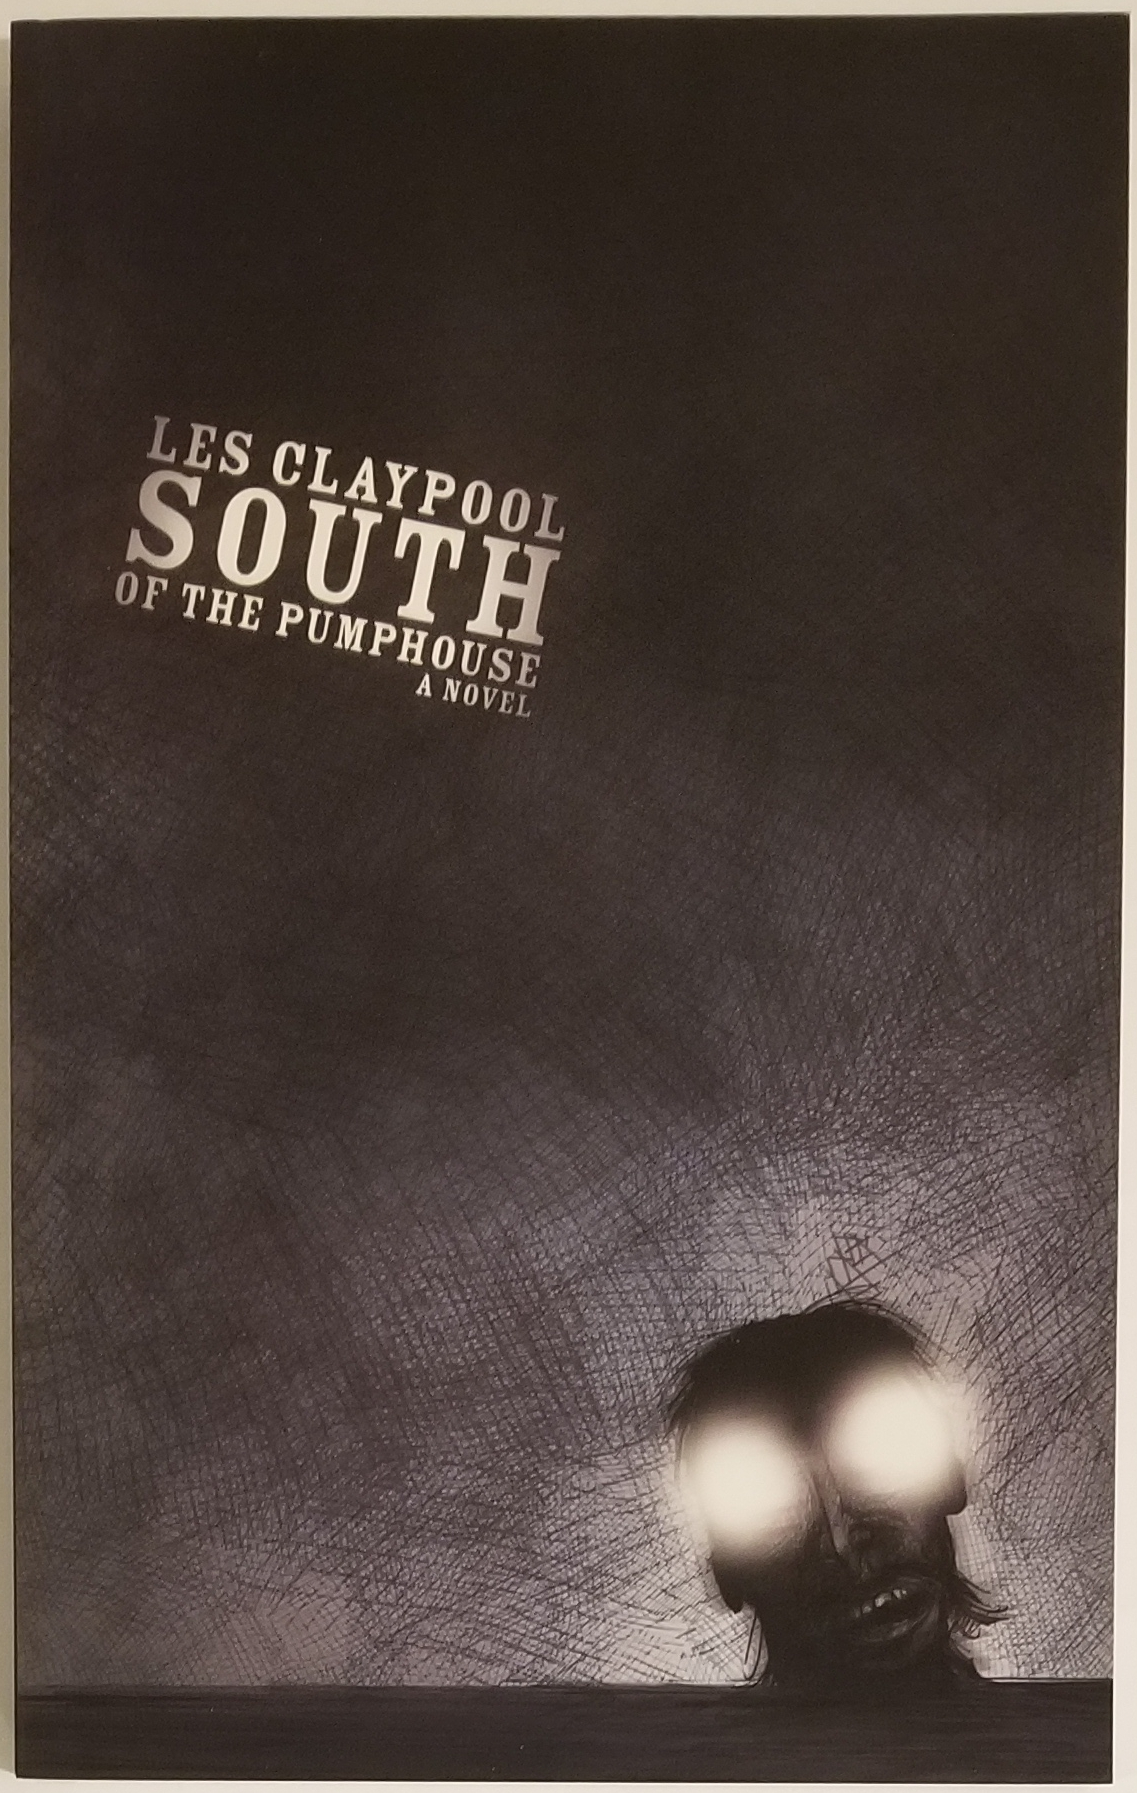 SOUTH OF THE PUMPHOUSE. Les Claypool.